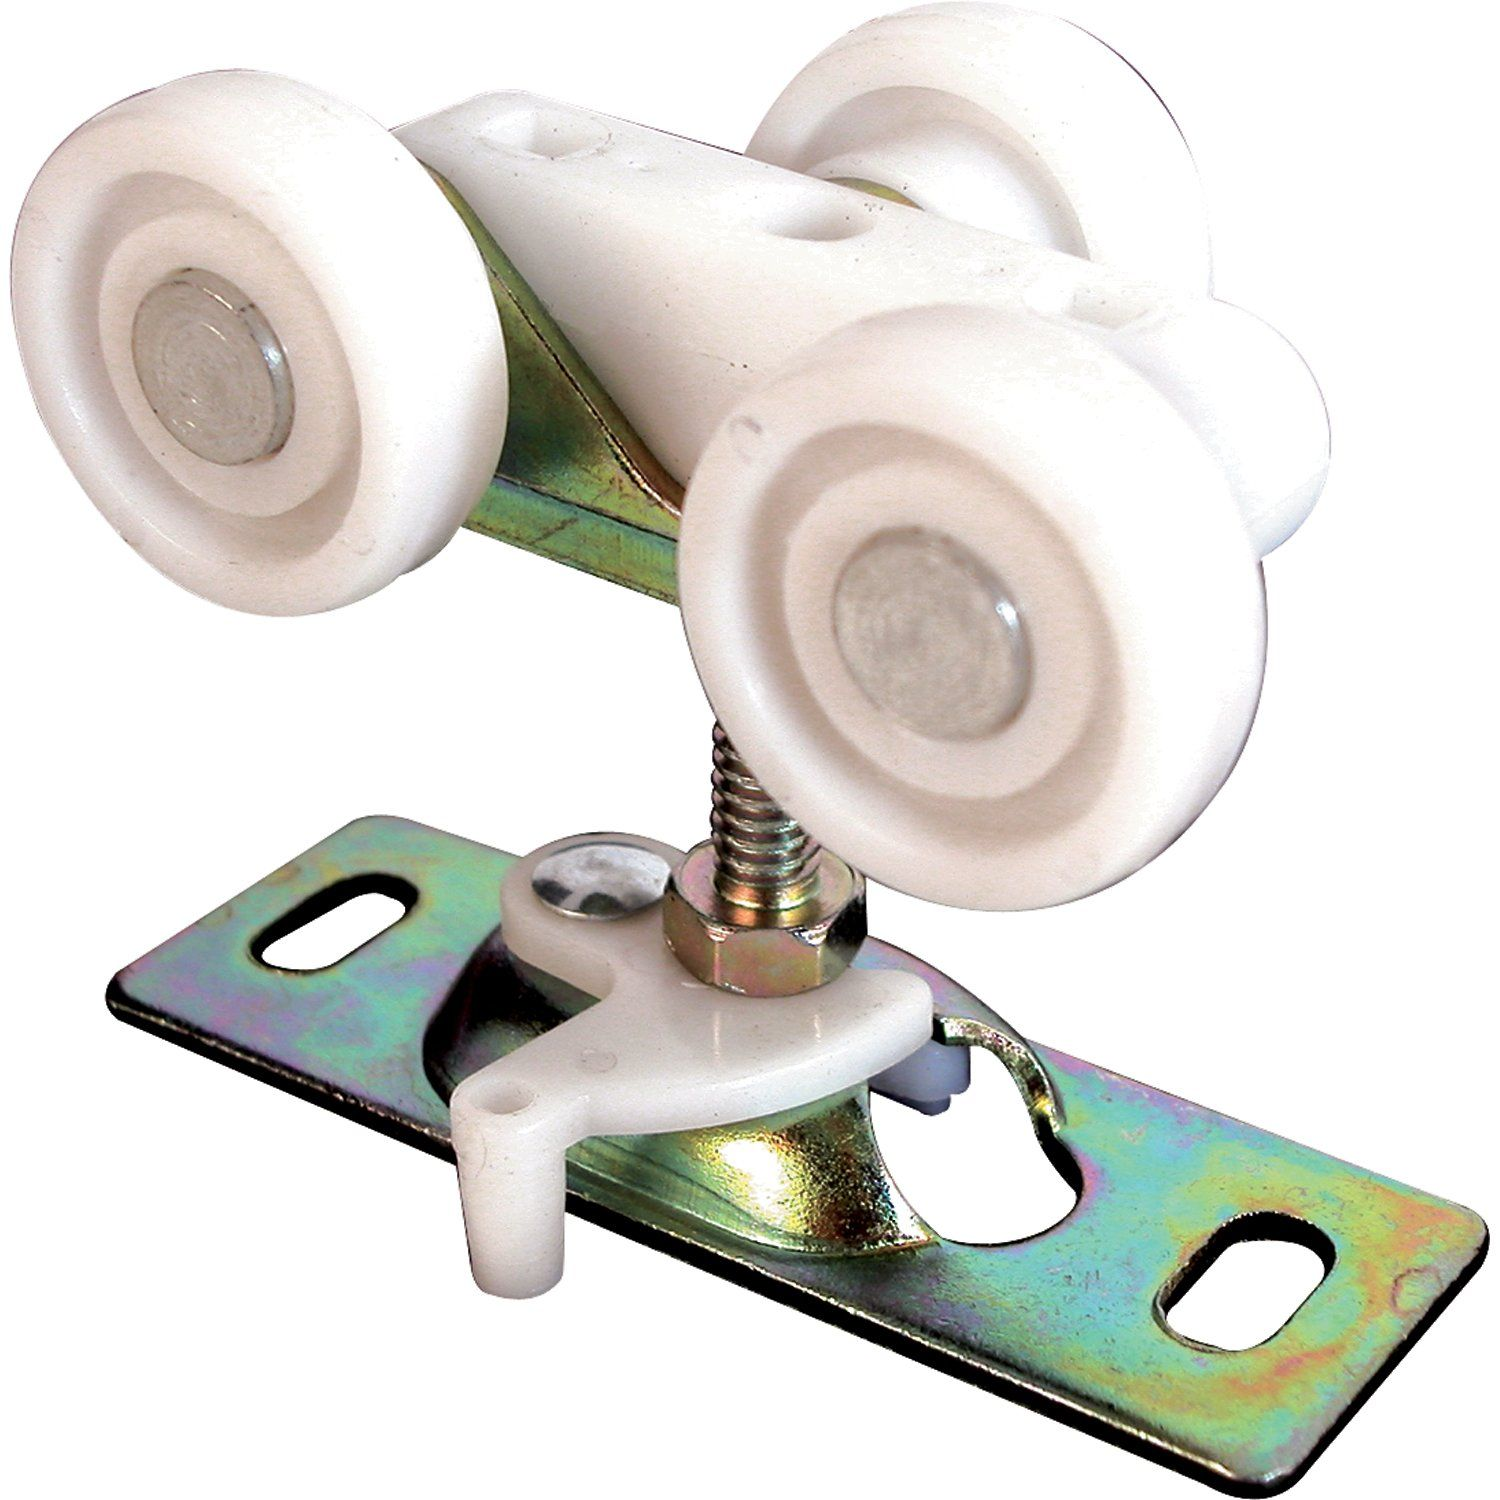 Prime Line Products N 6848 Pocket Door Roller Read More Reviews Of The Product By Visiting The Link On In 2020 Pocket Door Rollers Pocket Doors Pocket Door Hardware